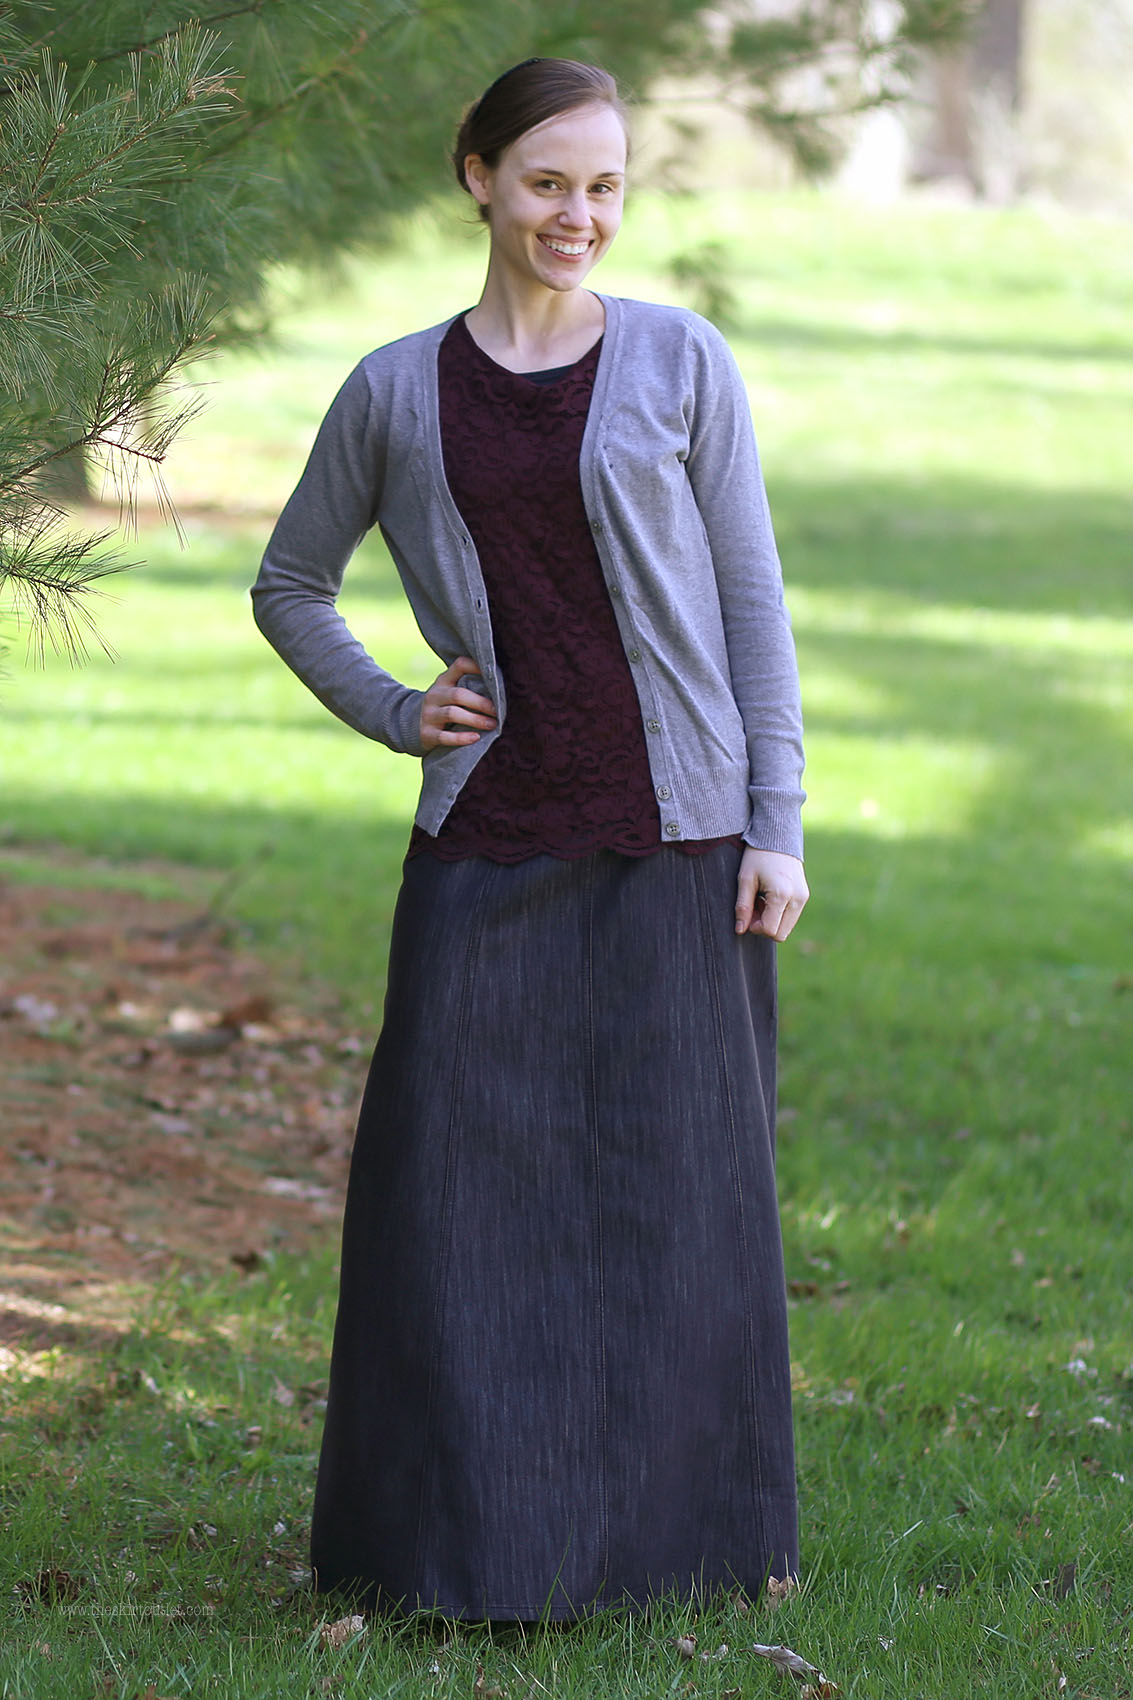 Shimmer Black Modest Jean Skirt | Long Skirt Size 6-16